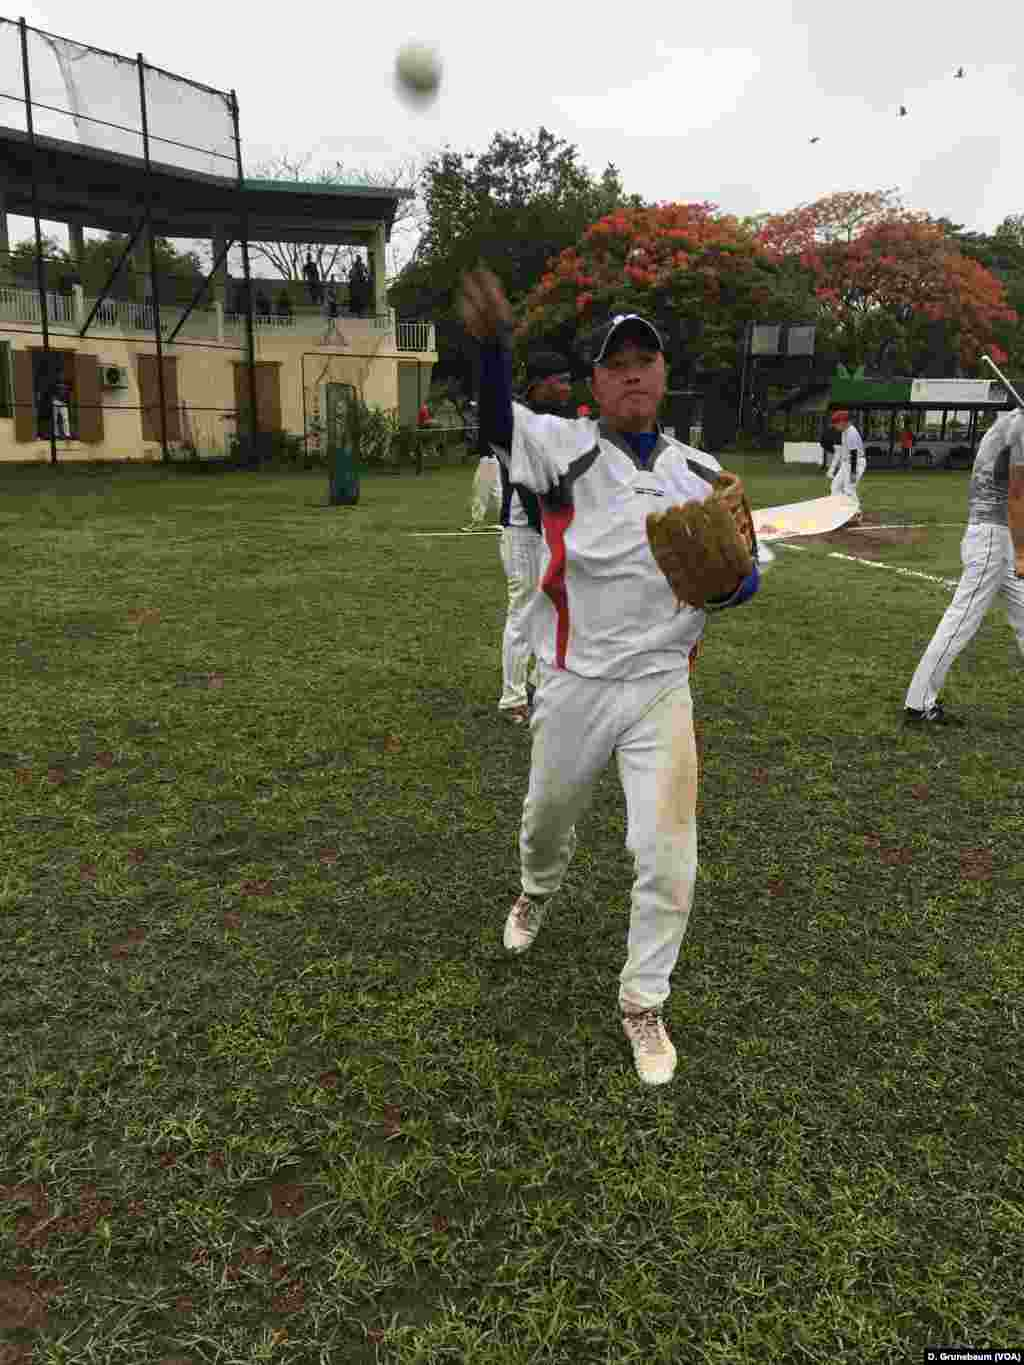 Kyaw Thuya Tun, a taxi driver, plays first base for the Myanmar national team.